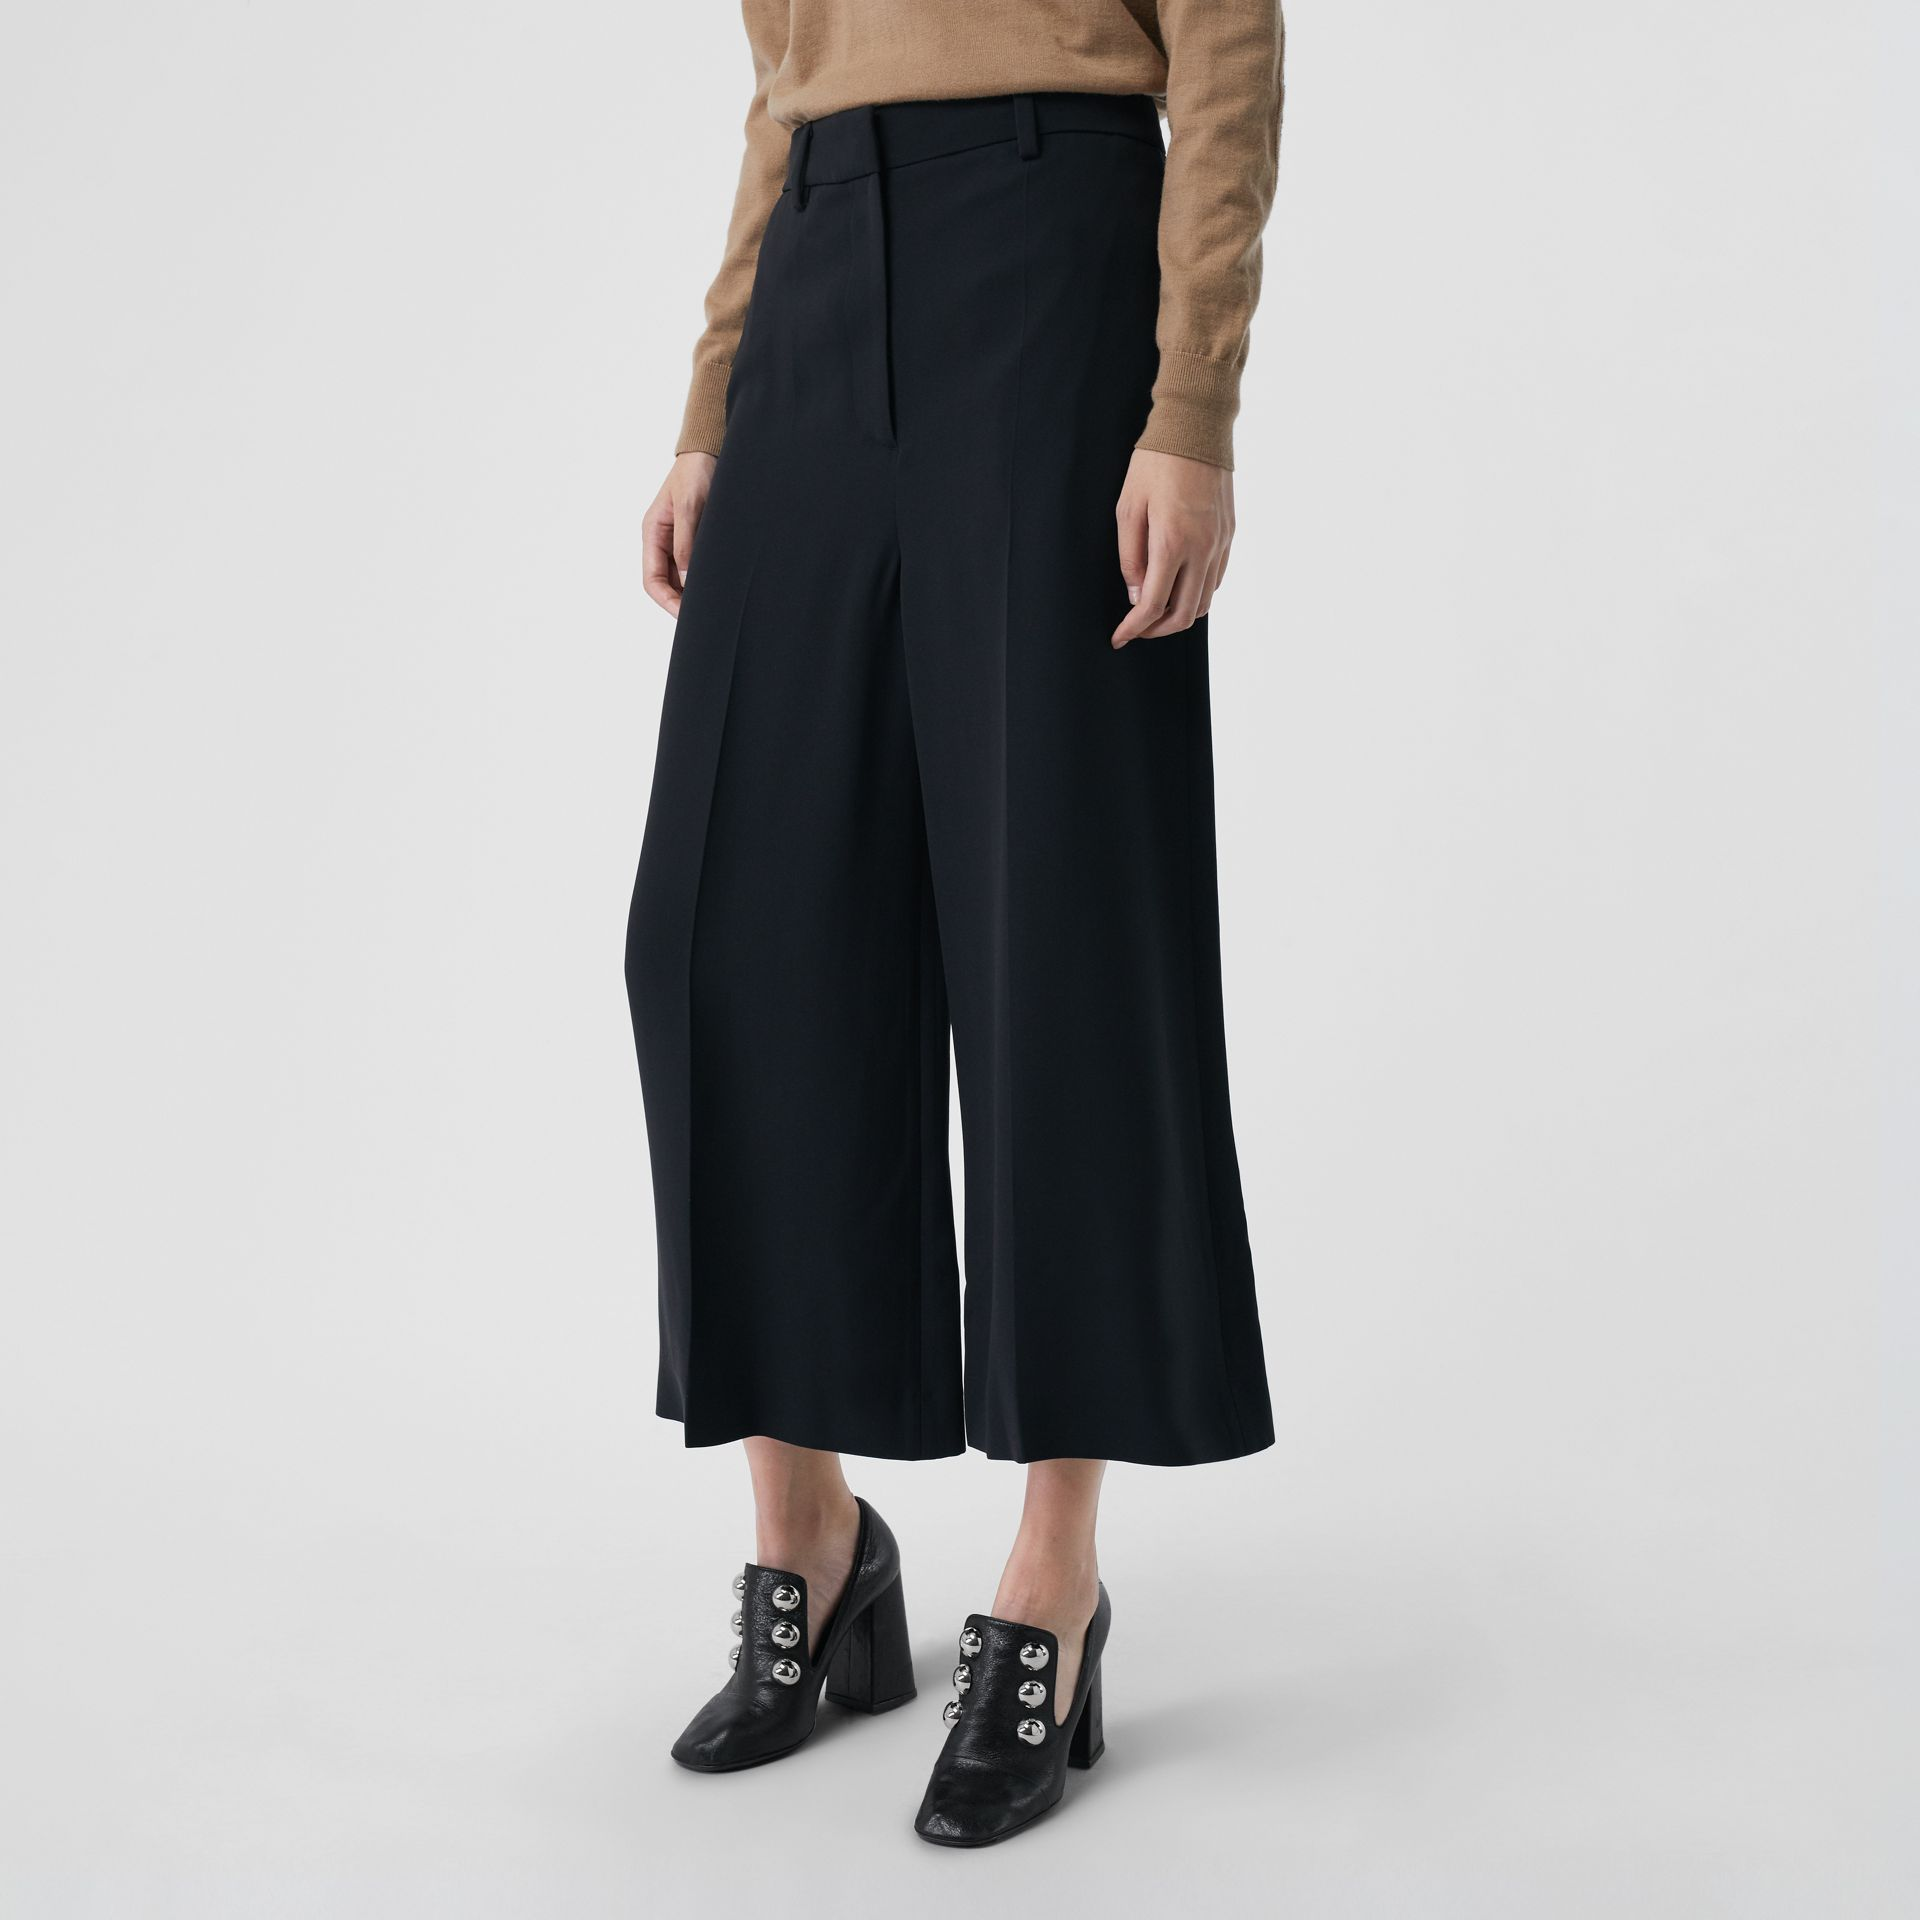 Silk Wool Tailored Culottes in Black - Women | Burberry - gallery image 4